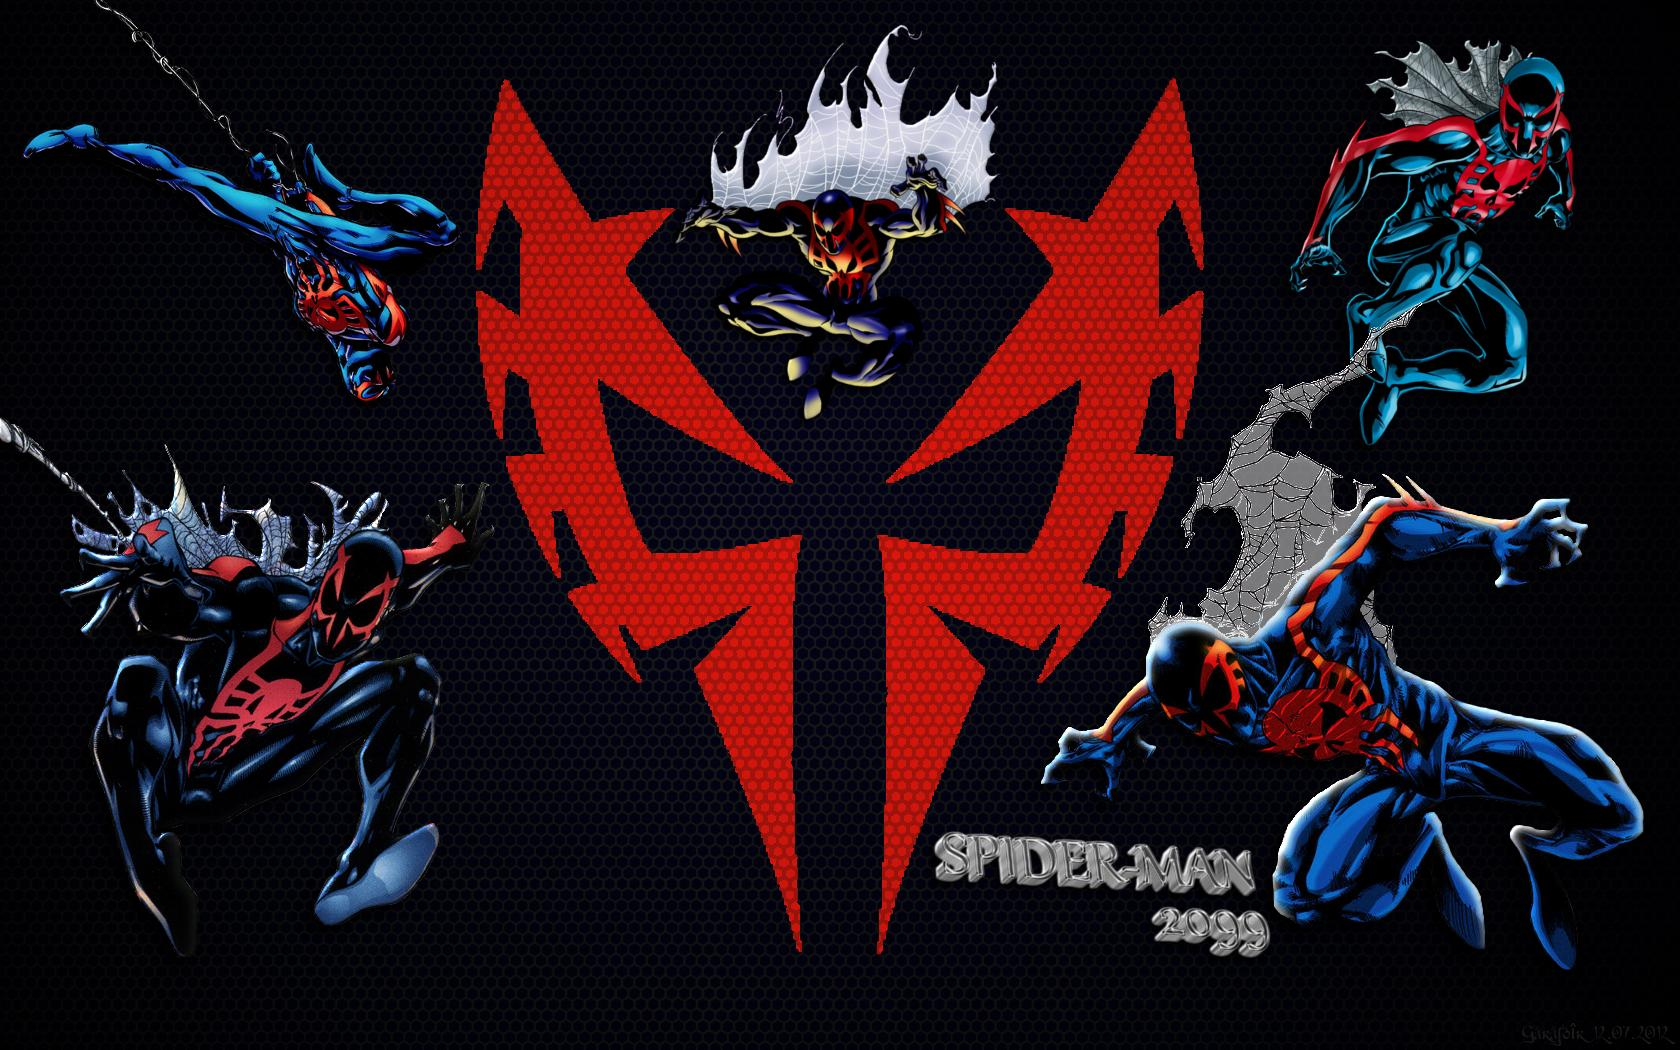 Free Download Spider Man 2099 Wallpapers 1680x1050 For Your